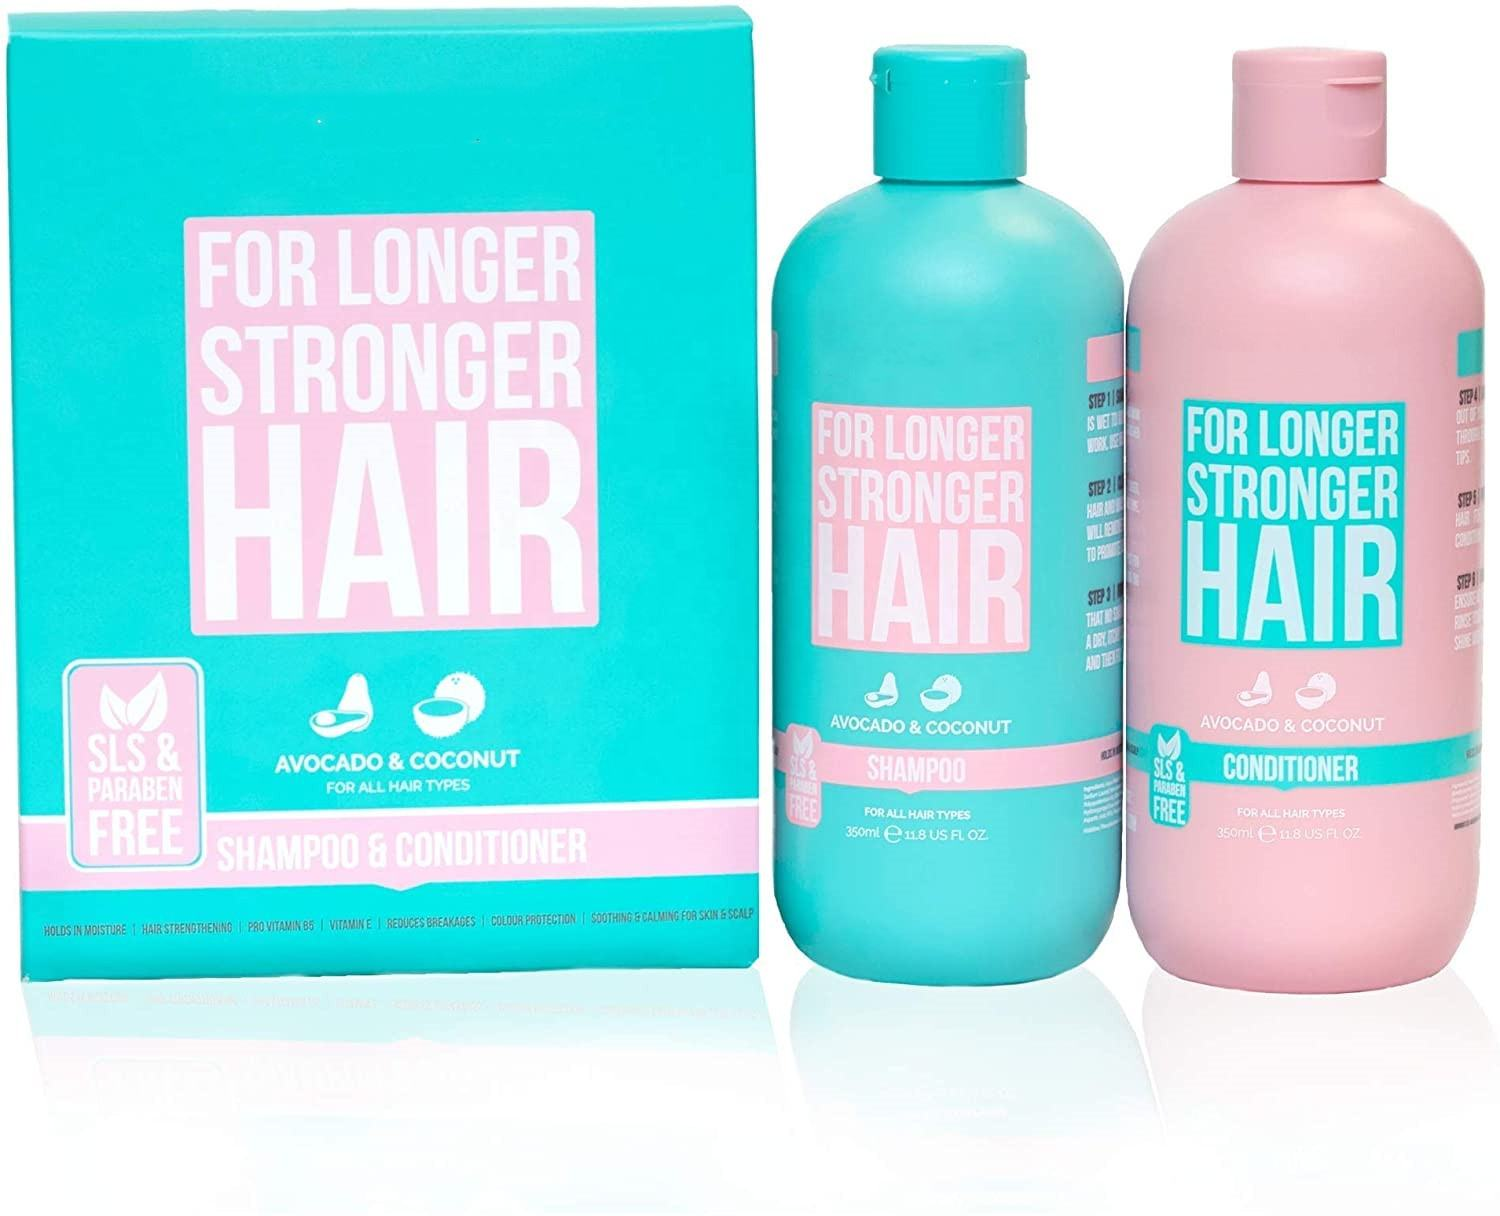 Private Label Hair Loss & Promotes Healthy Hair Care Hair Growth Shampoo and conditioner